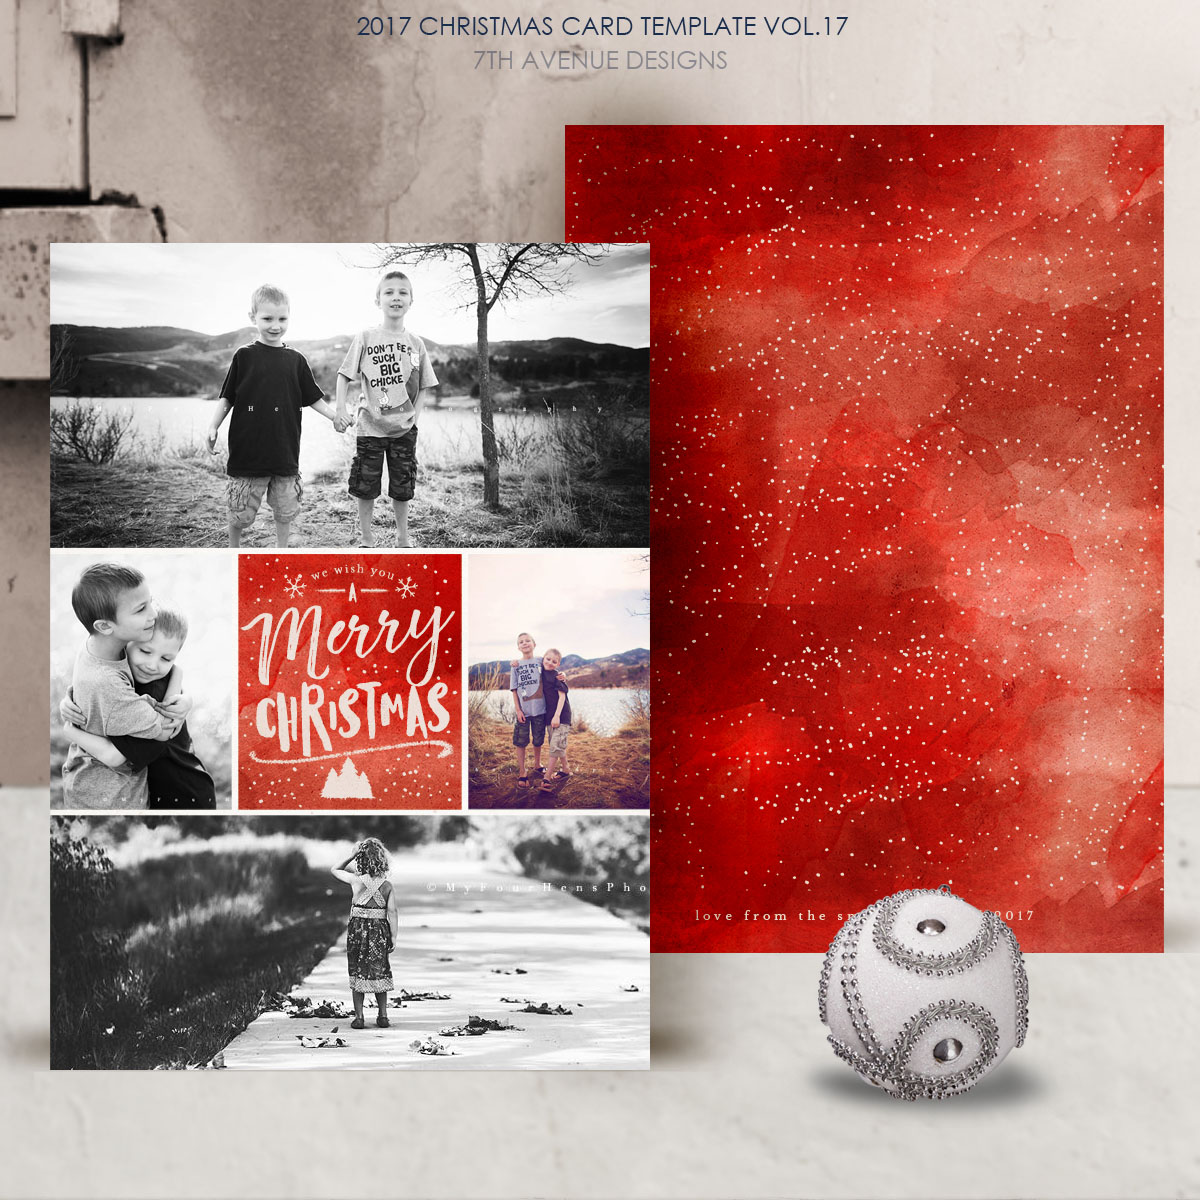 2017 christmas card templates vol17 - Christmas Photo Cards 2017